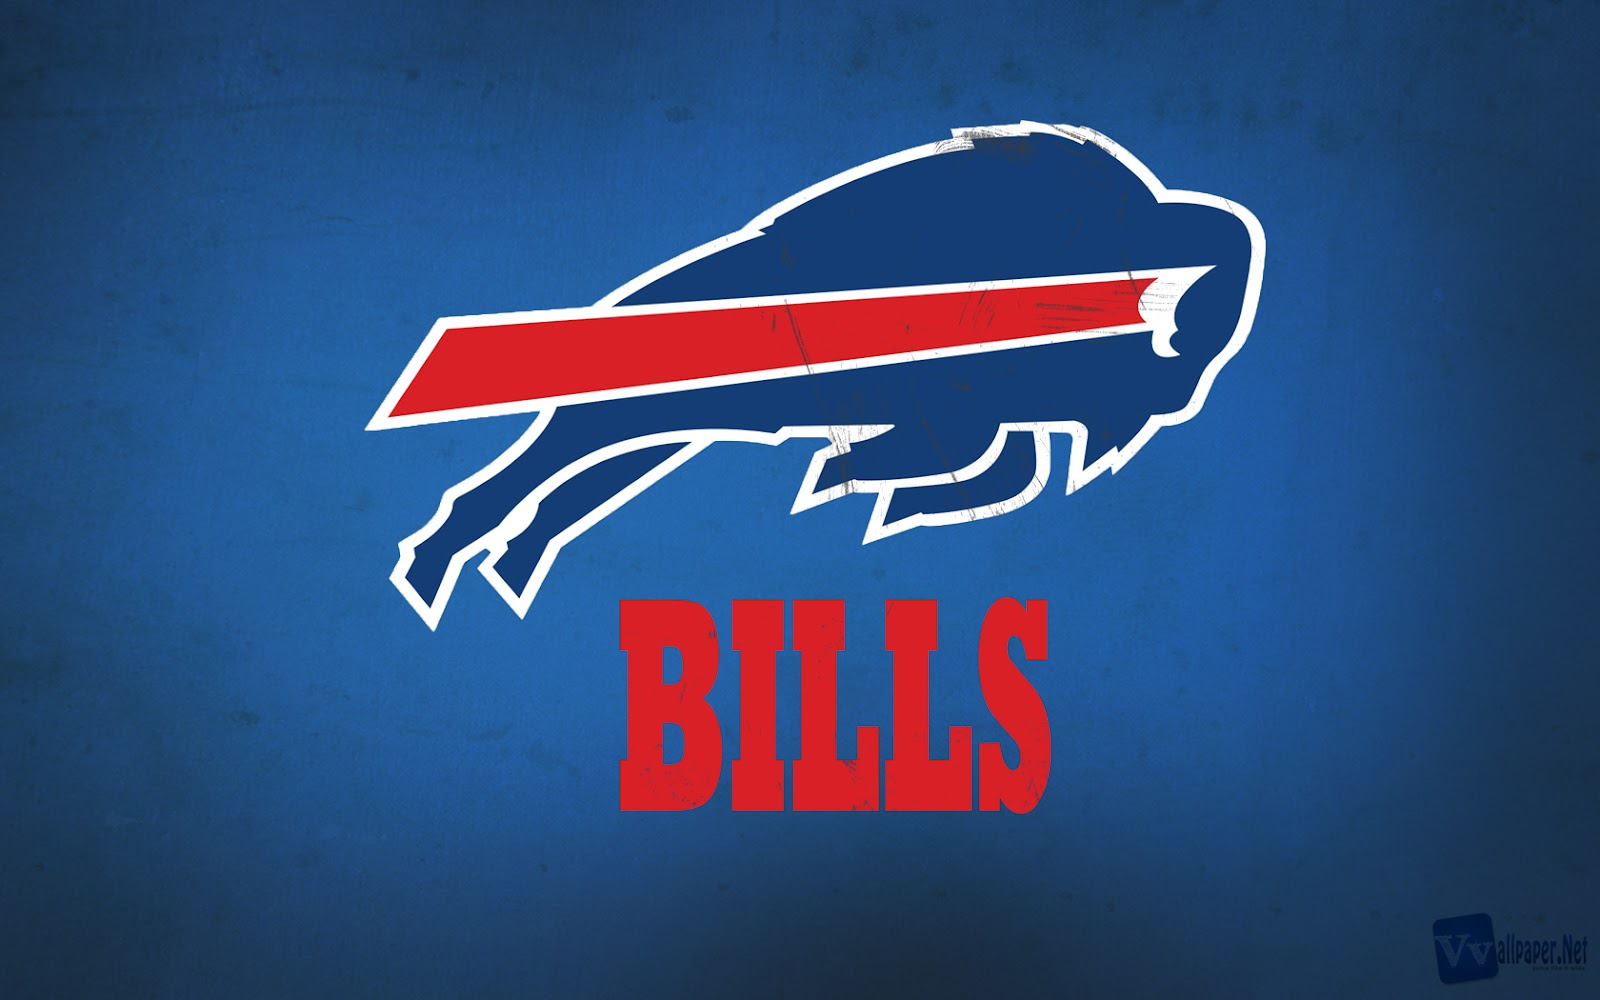 Bills Buffalo Bills Logo Design Desktop Wallpaper VvallapperNetjpg 1600x1000